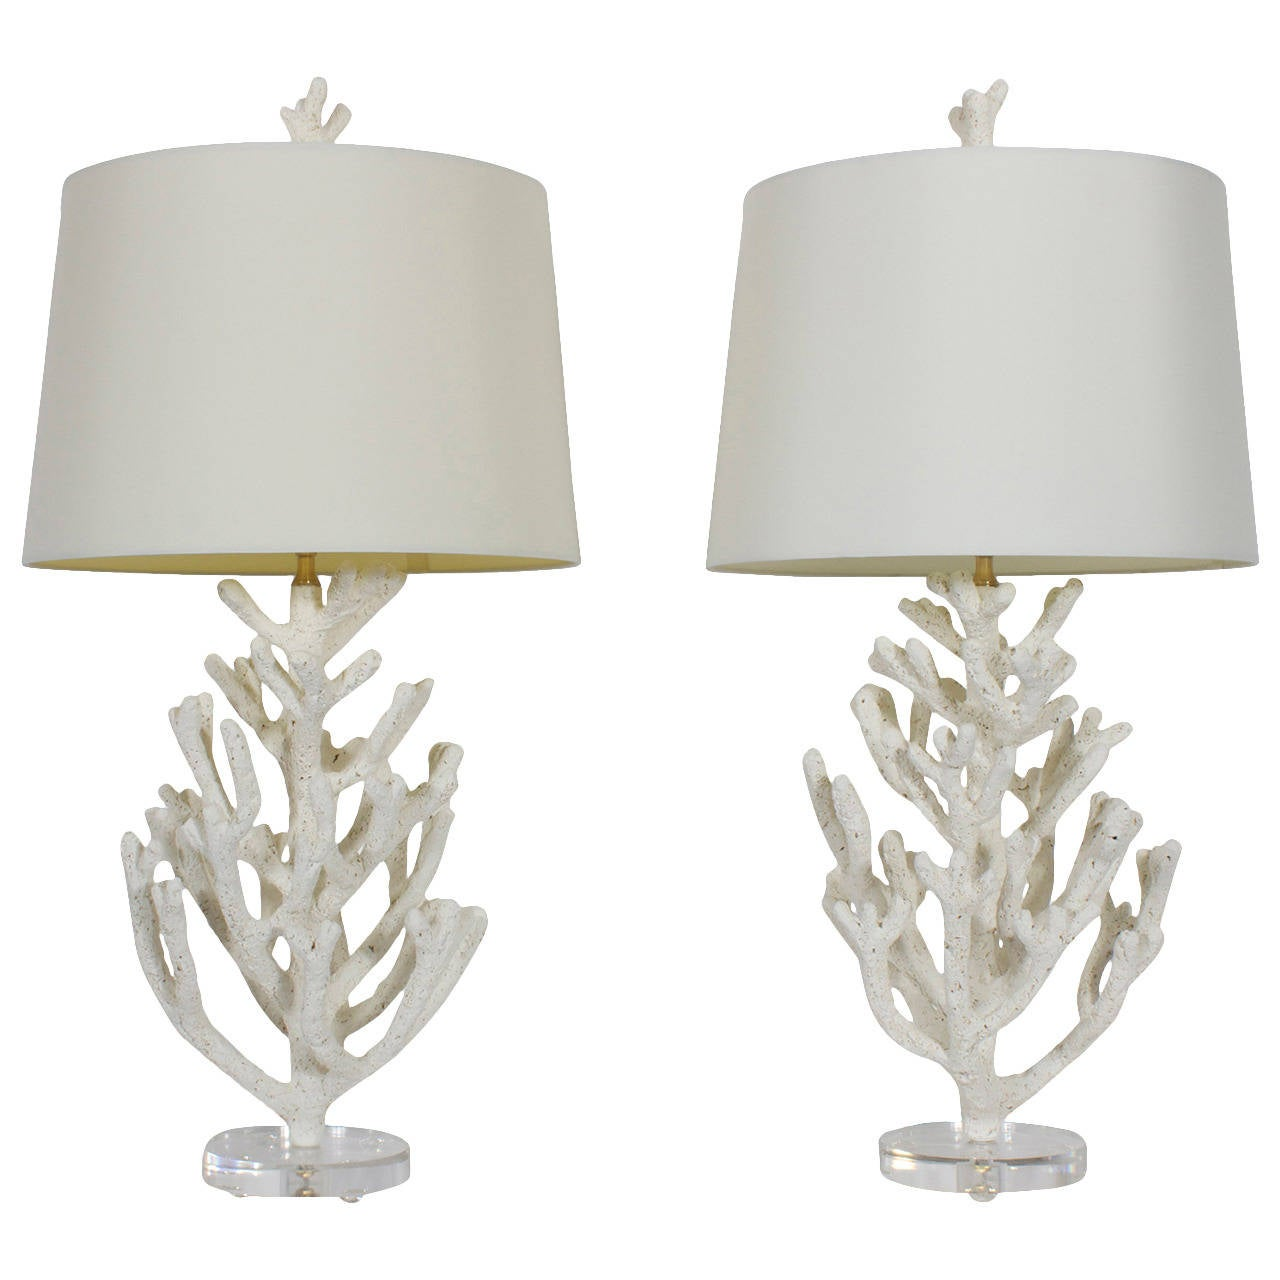 Merveilleux Pair Of Faux Coral Custom Table Lamps On Lucite Bases For Sale